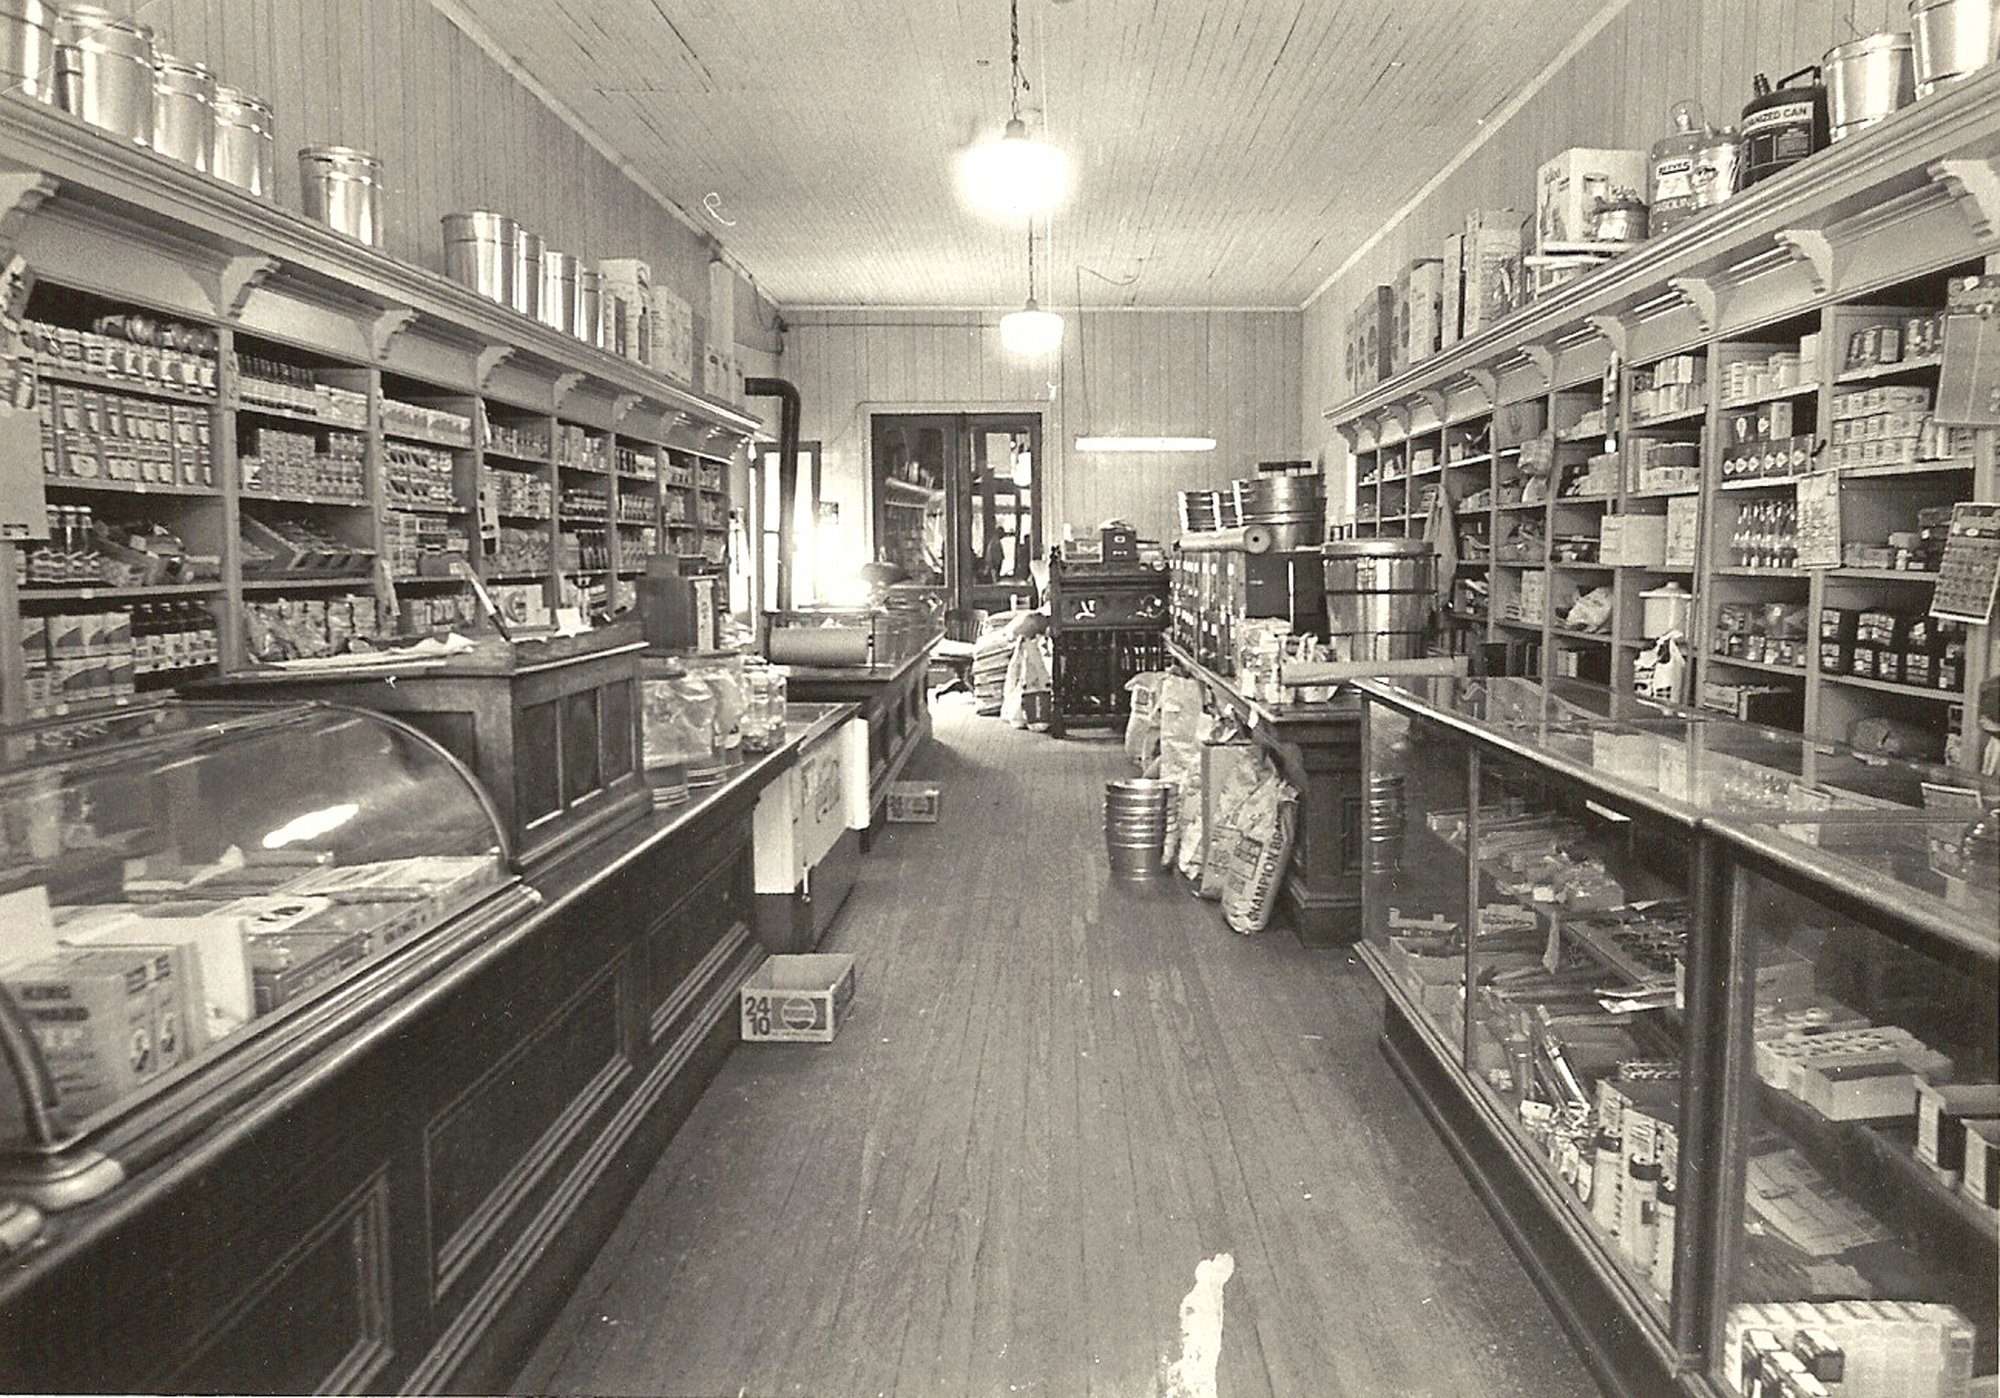 The interior of Barnett's Store is seen.